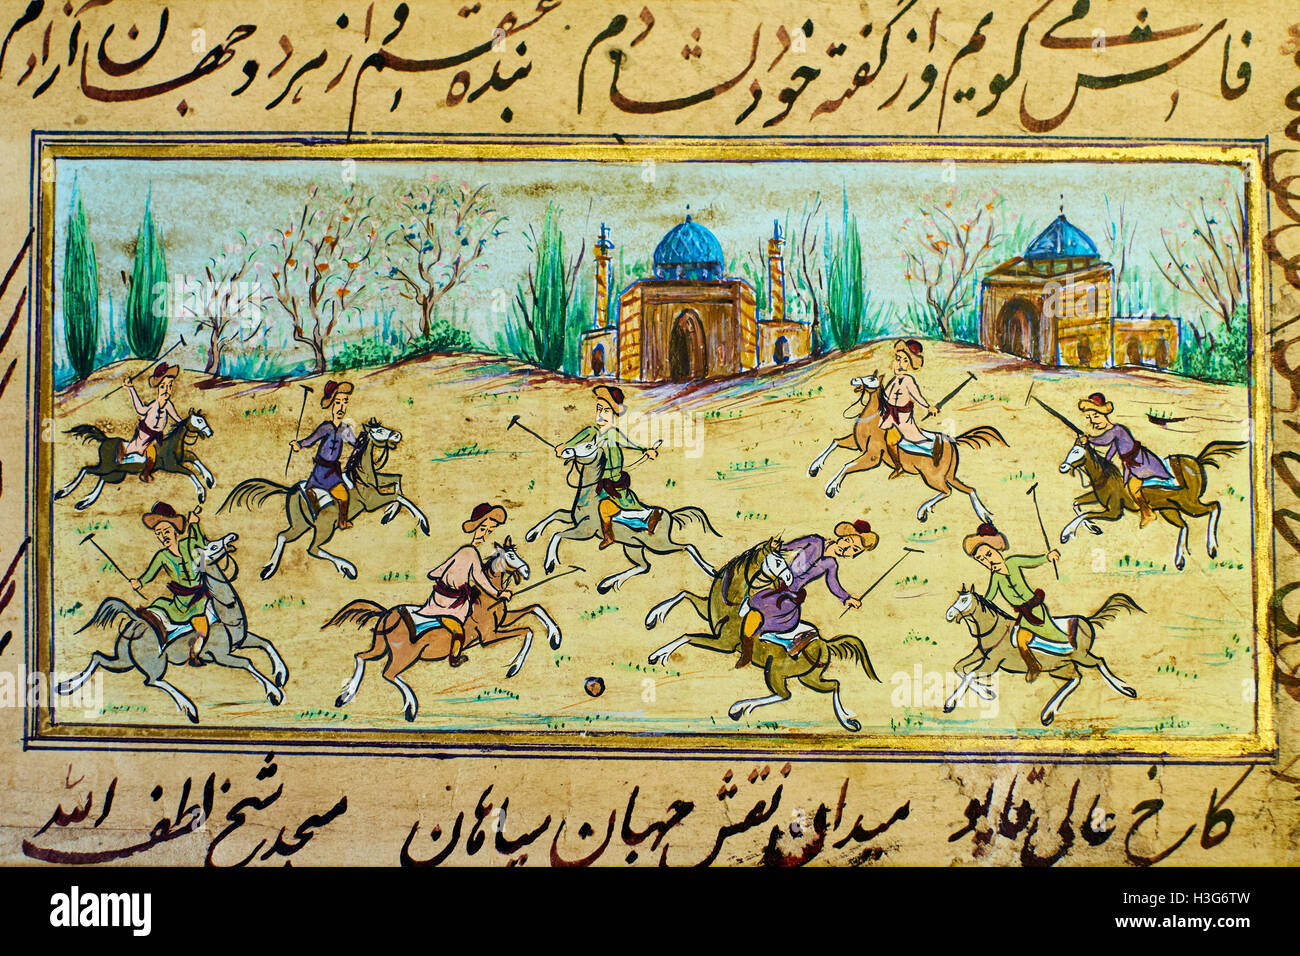 Iran, Isfahan, persian miniature, cavalier playing polo game - Stock Image